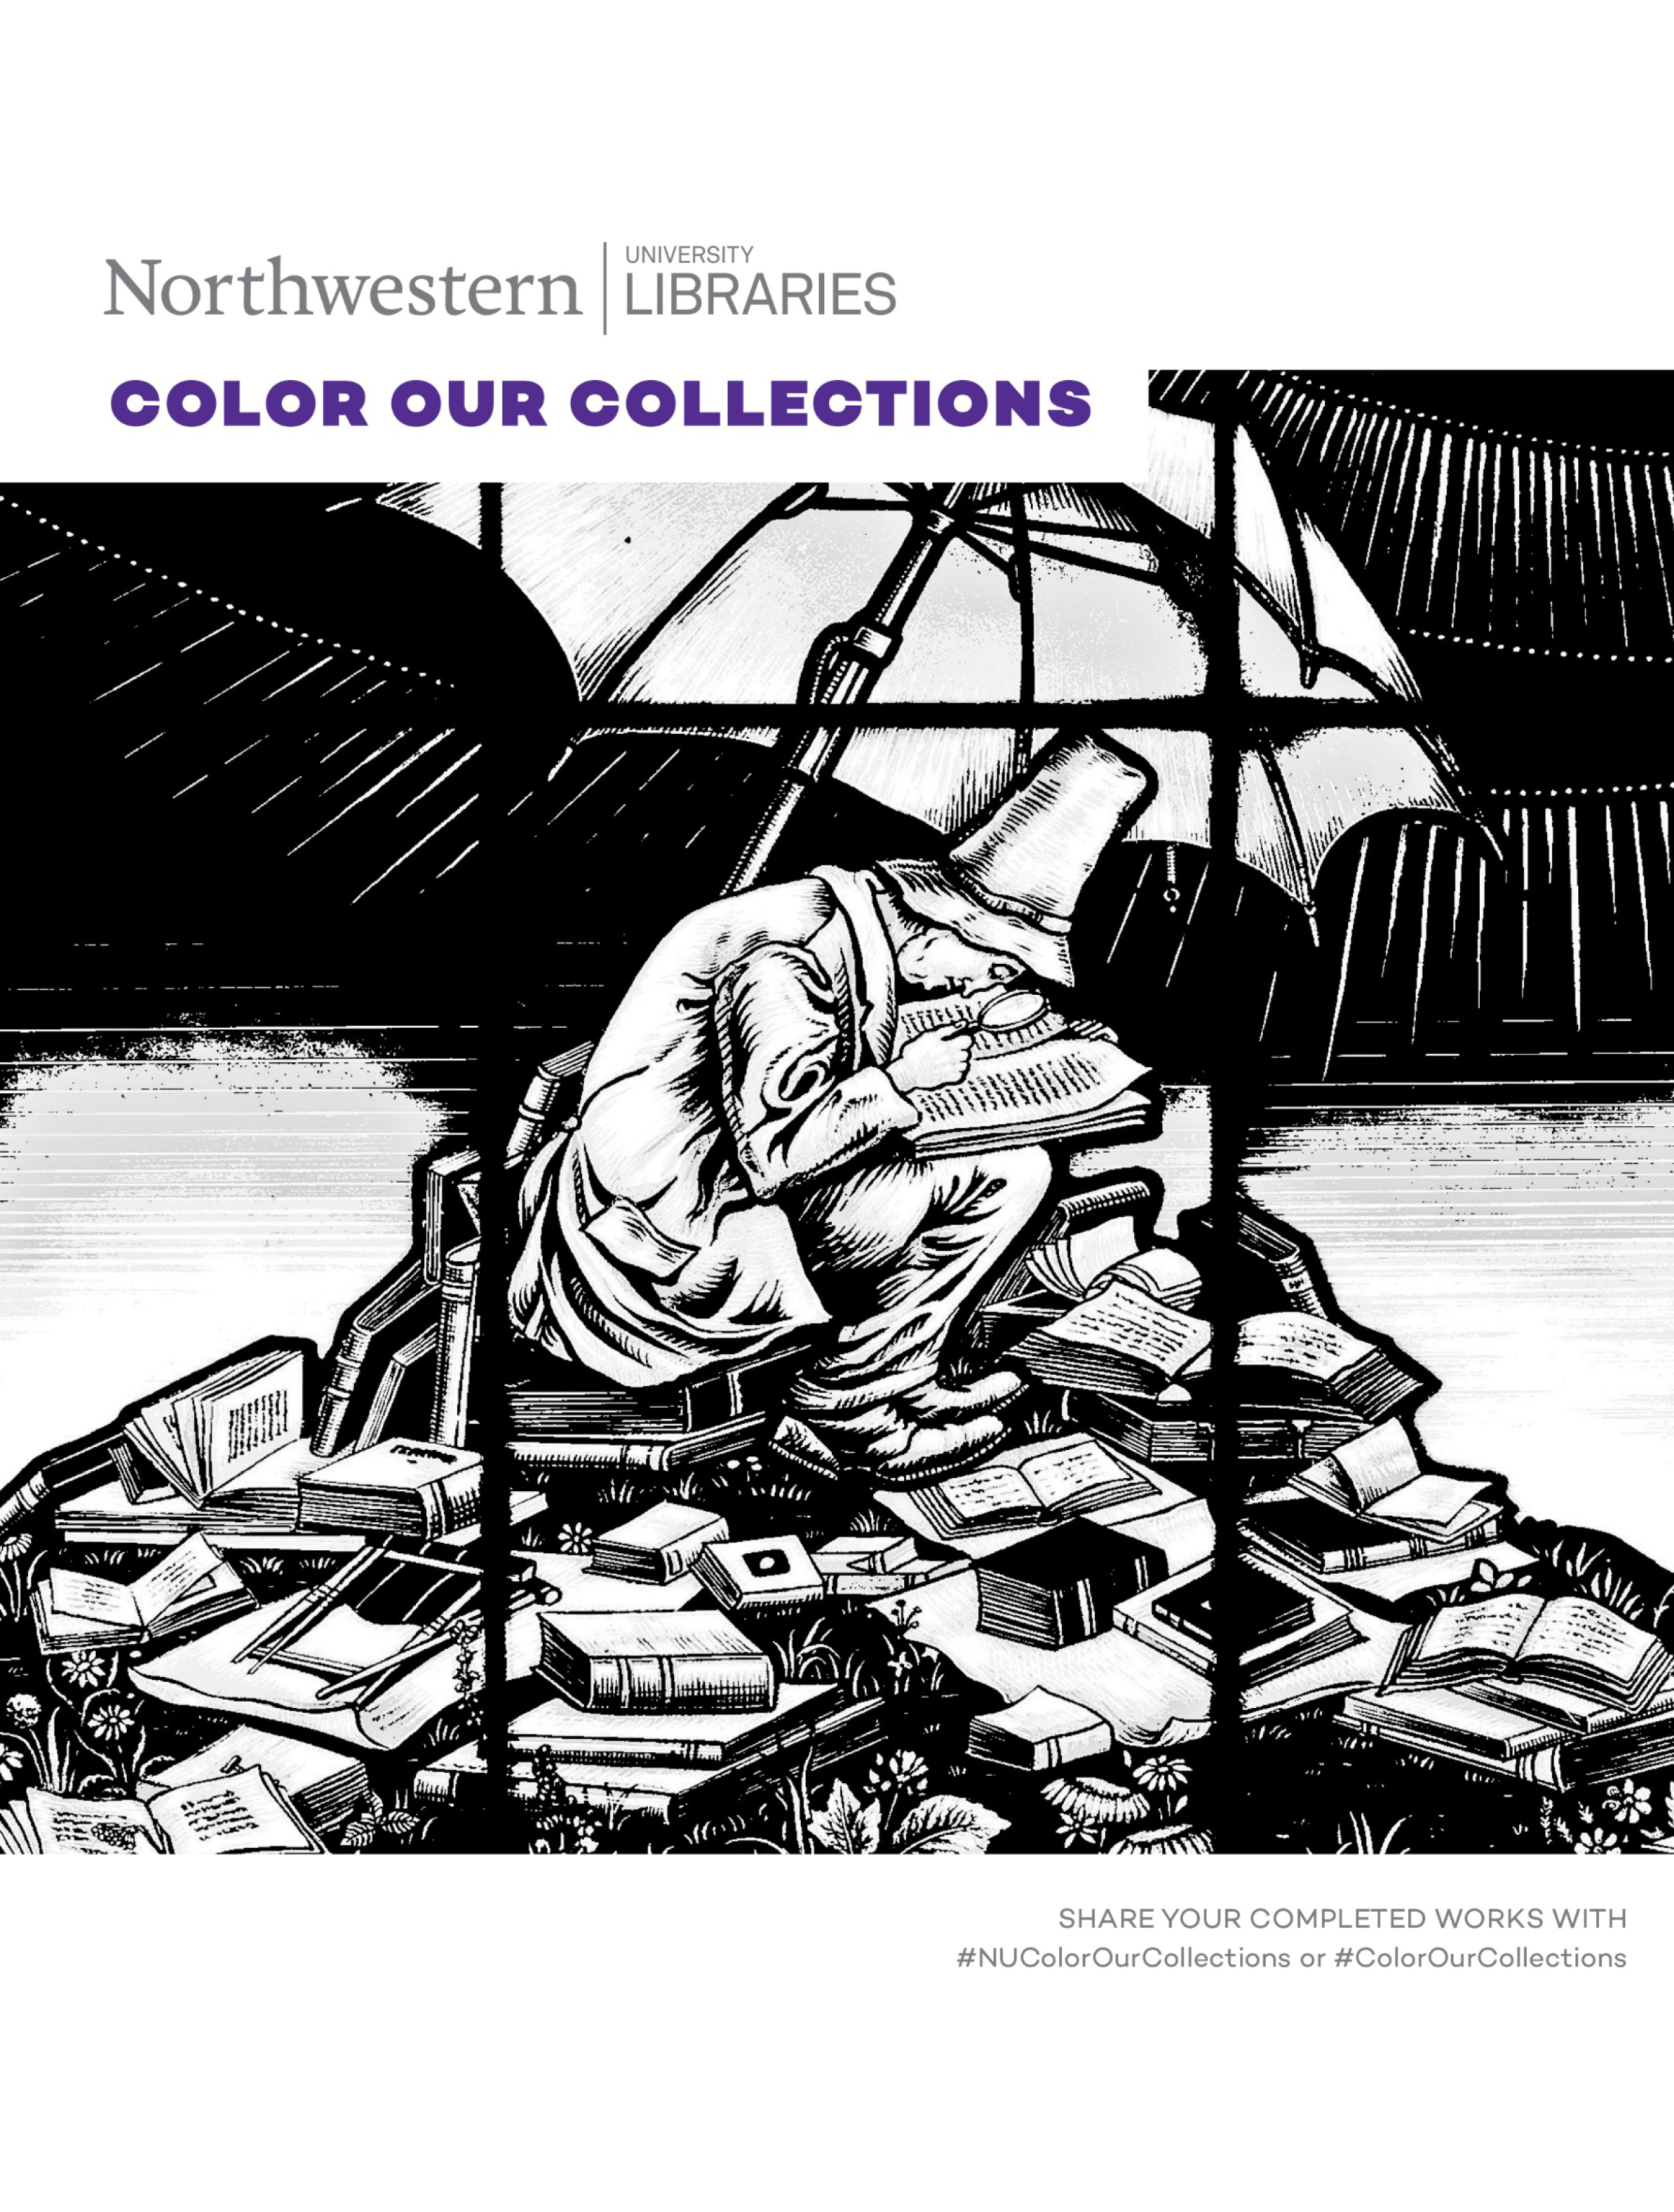 Fair play: coloring books and copyright – LIBRARIES | Blog